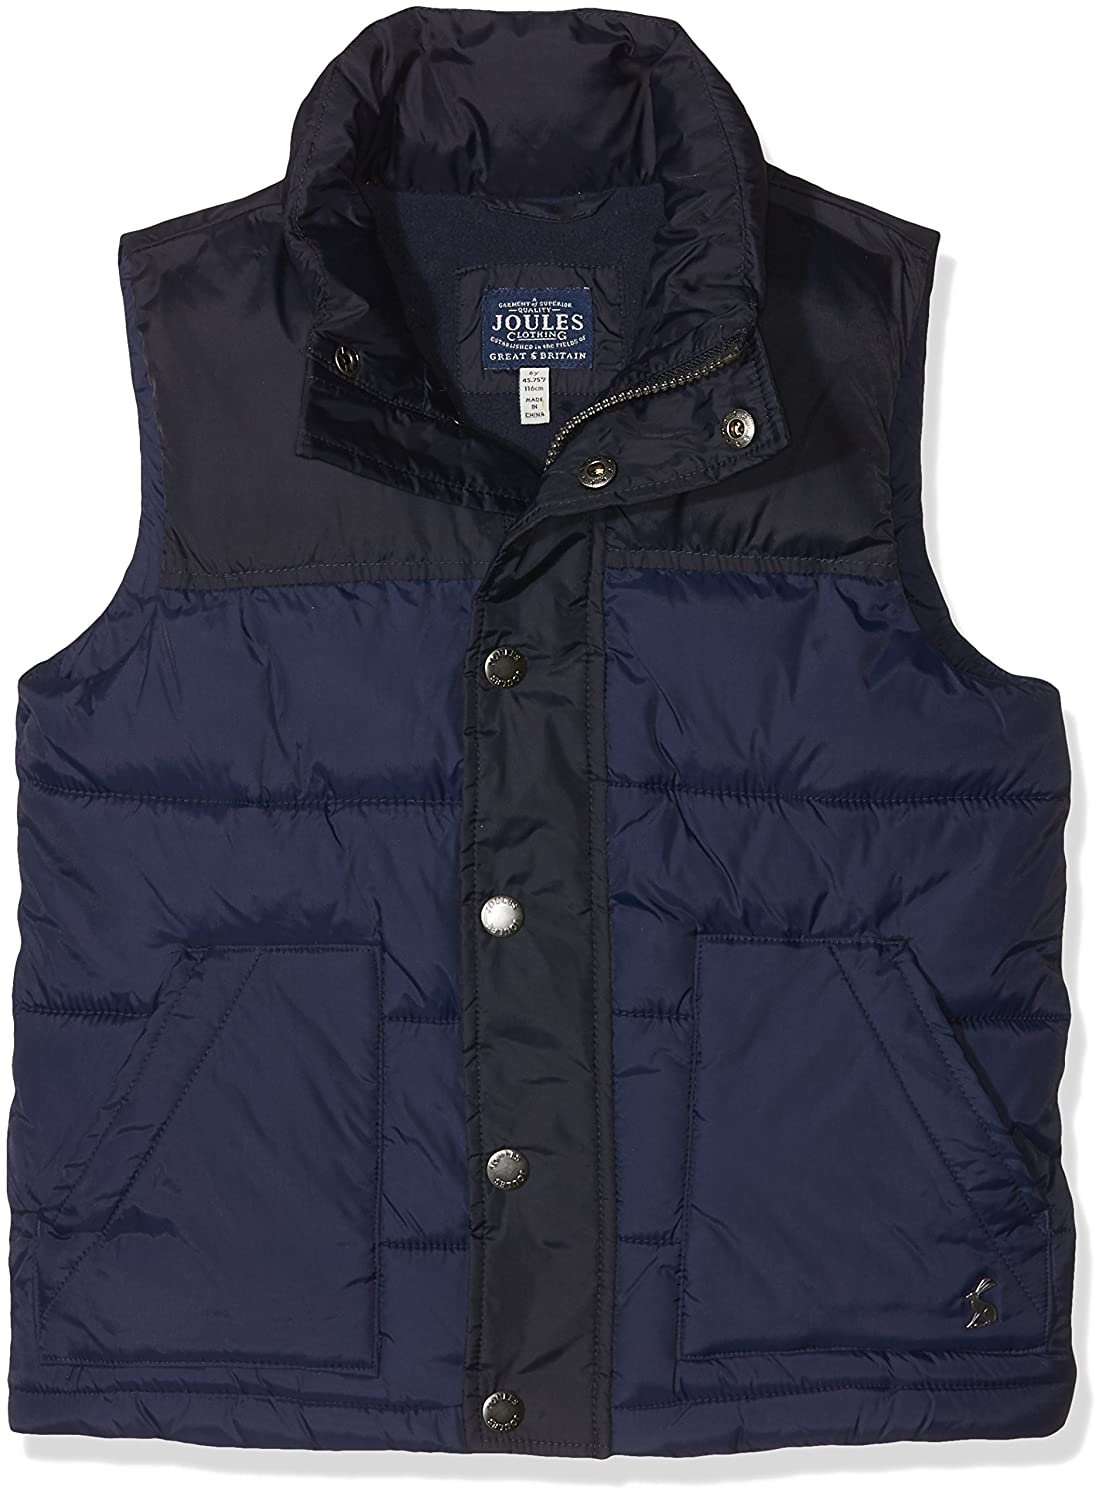 Joules OUTERWEAR ボーイズ Age 7-8 Marine Navy B0792NY8L8